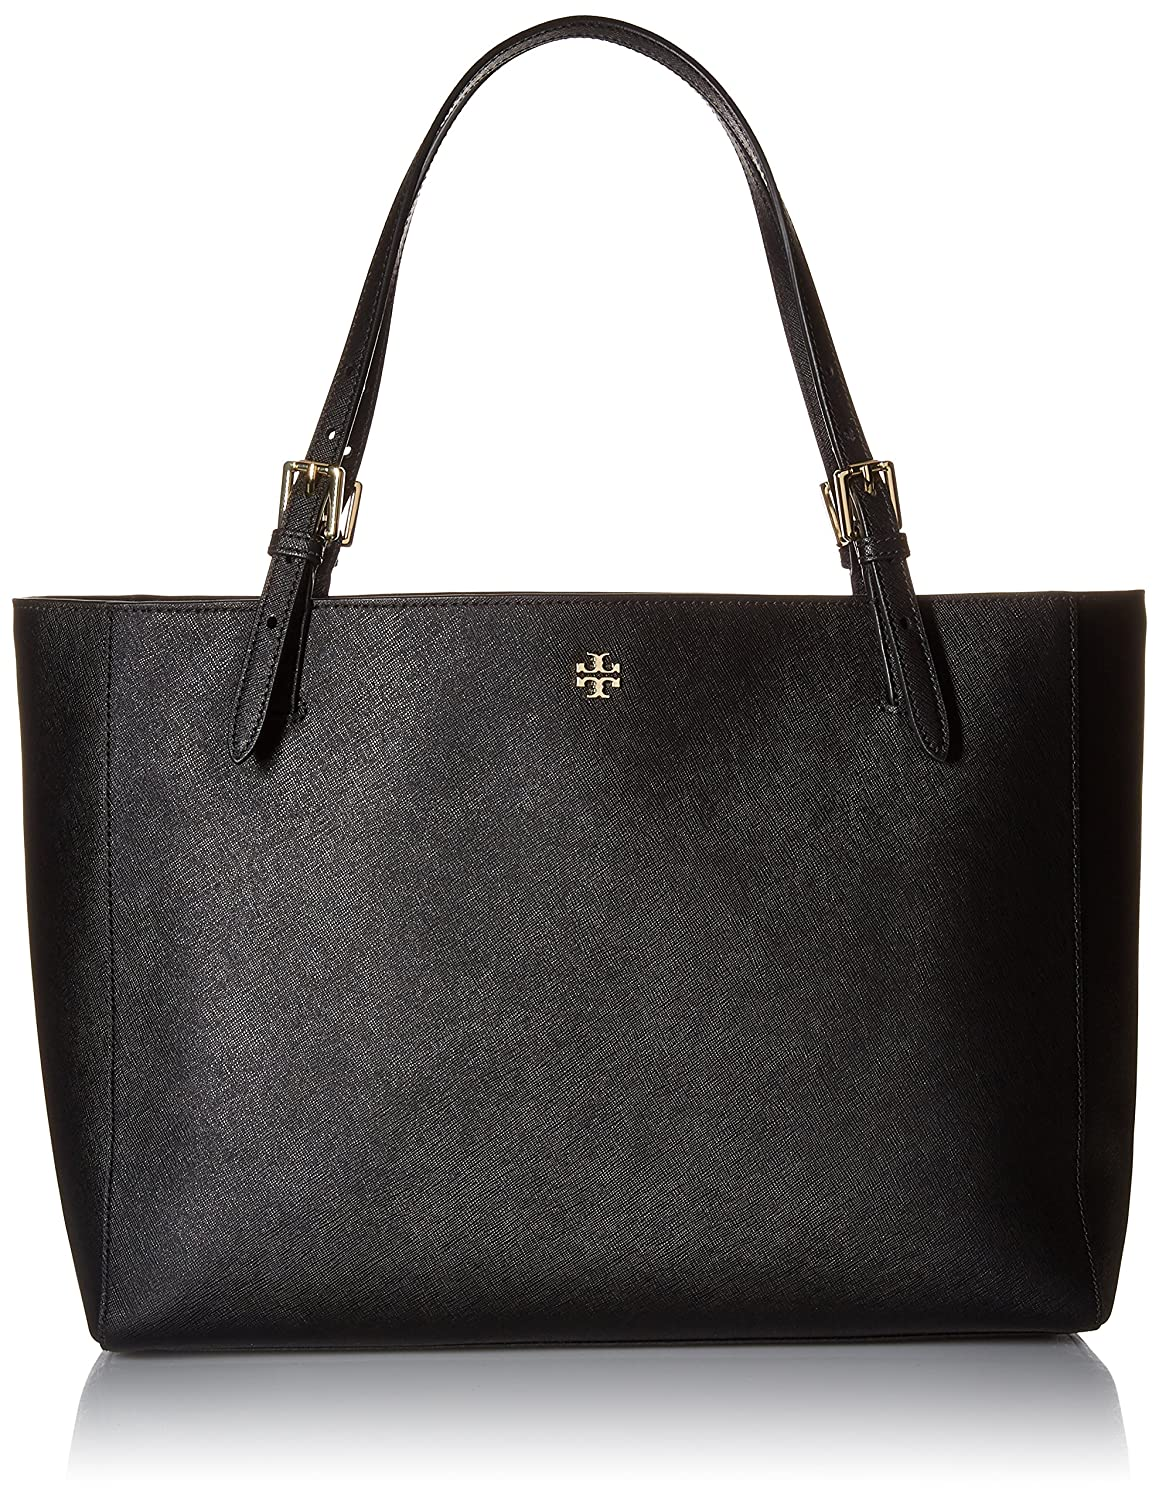 06794a449b7 Tory Burch York Buckle Tote - Black  Handbags  Amazon.com